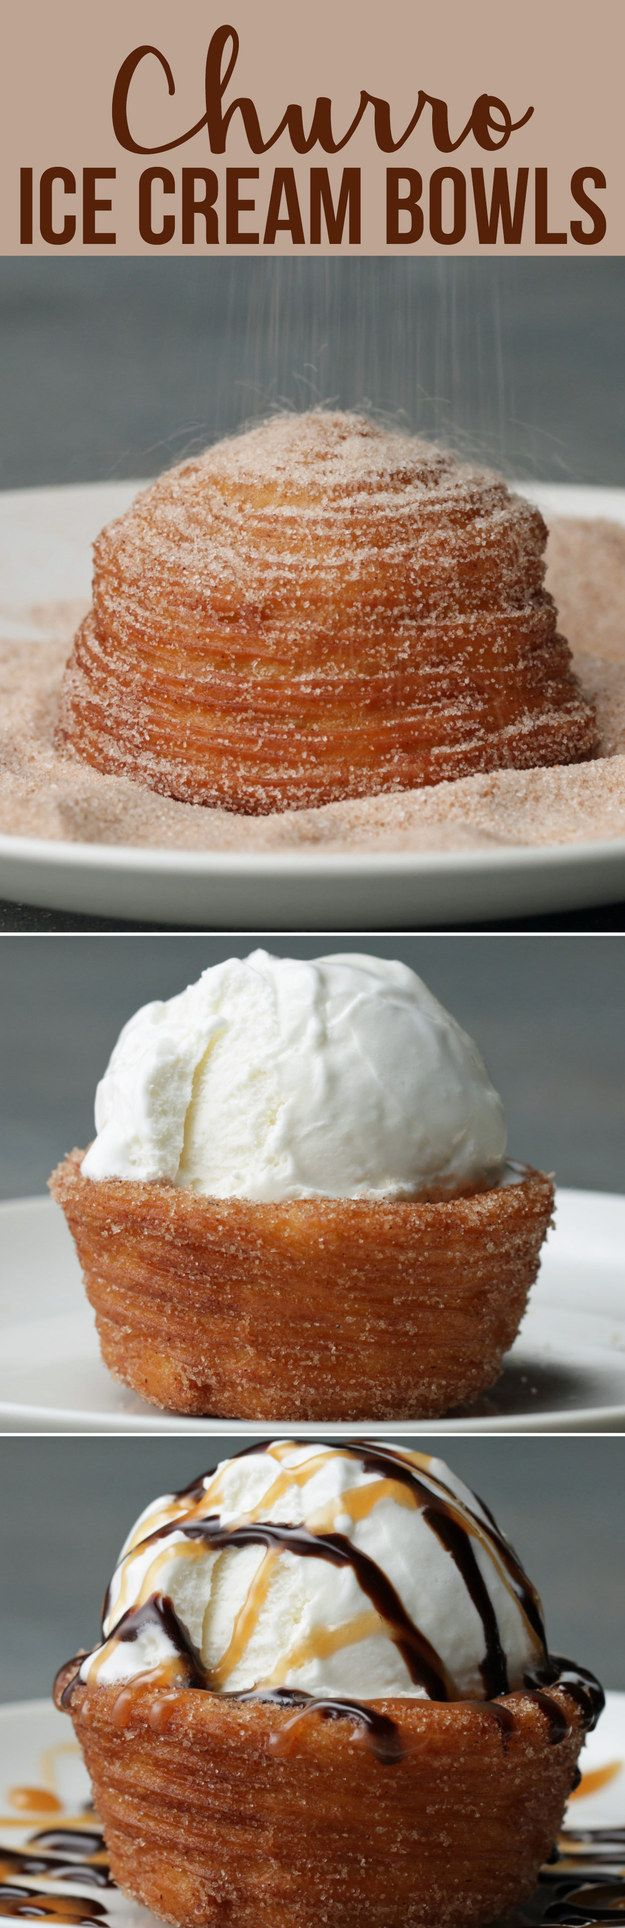 Churro Ice Cream Bowls